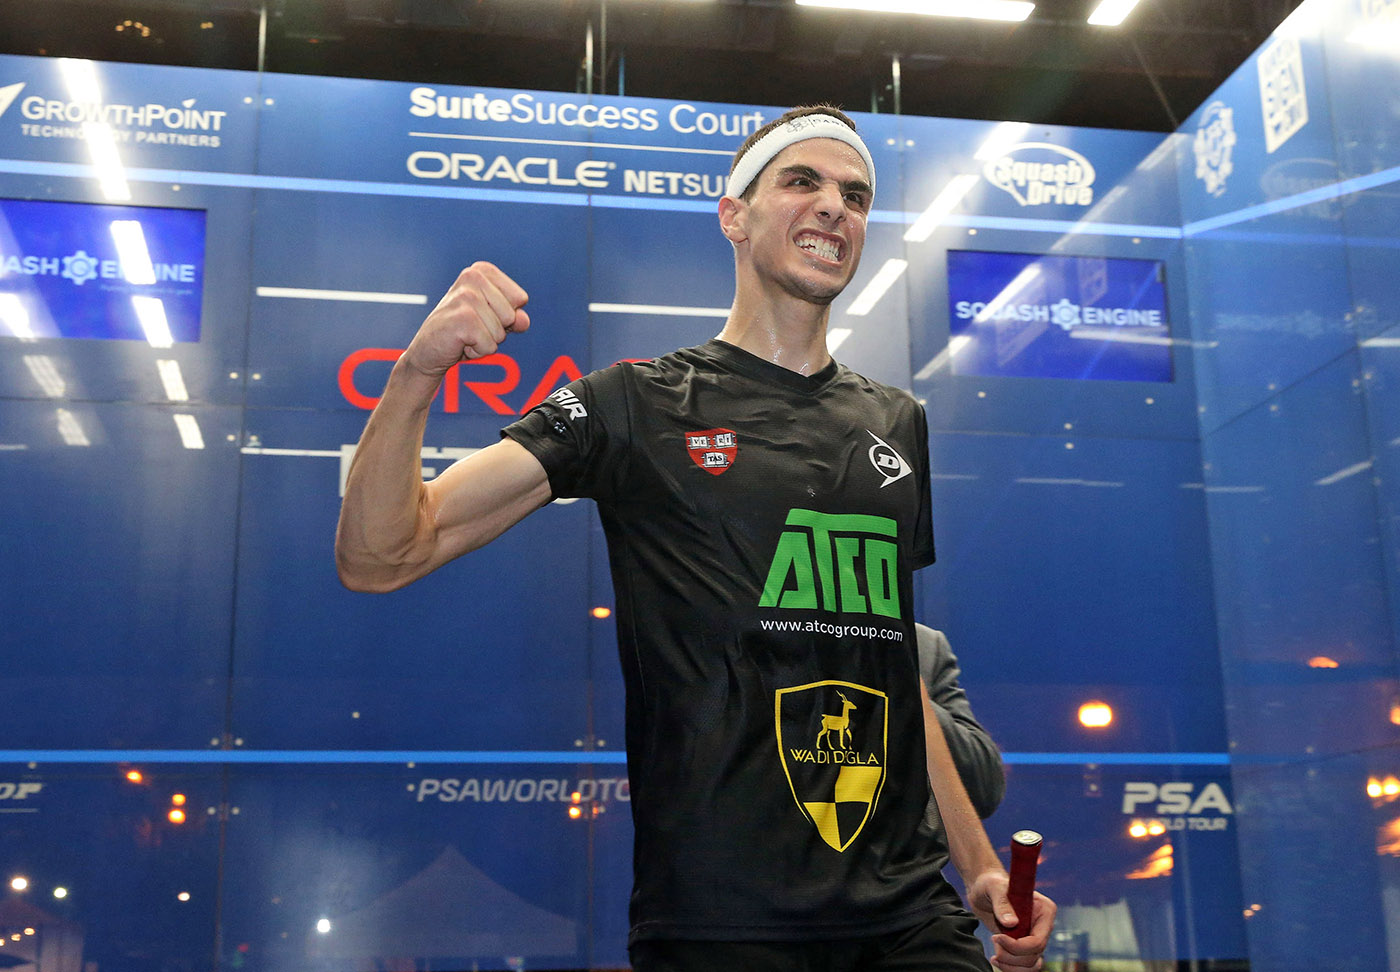 Farag Tops Gaultier in Five-Game Thriller; ElShorbagy and Perry to Defend Oracle NetSuite Open Titles in Finals